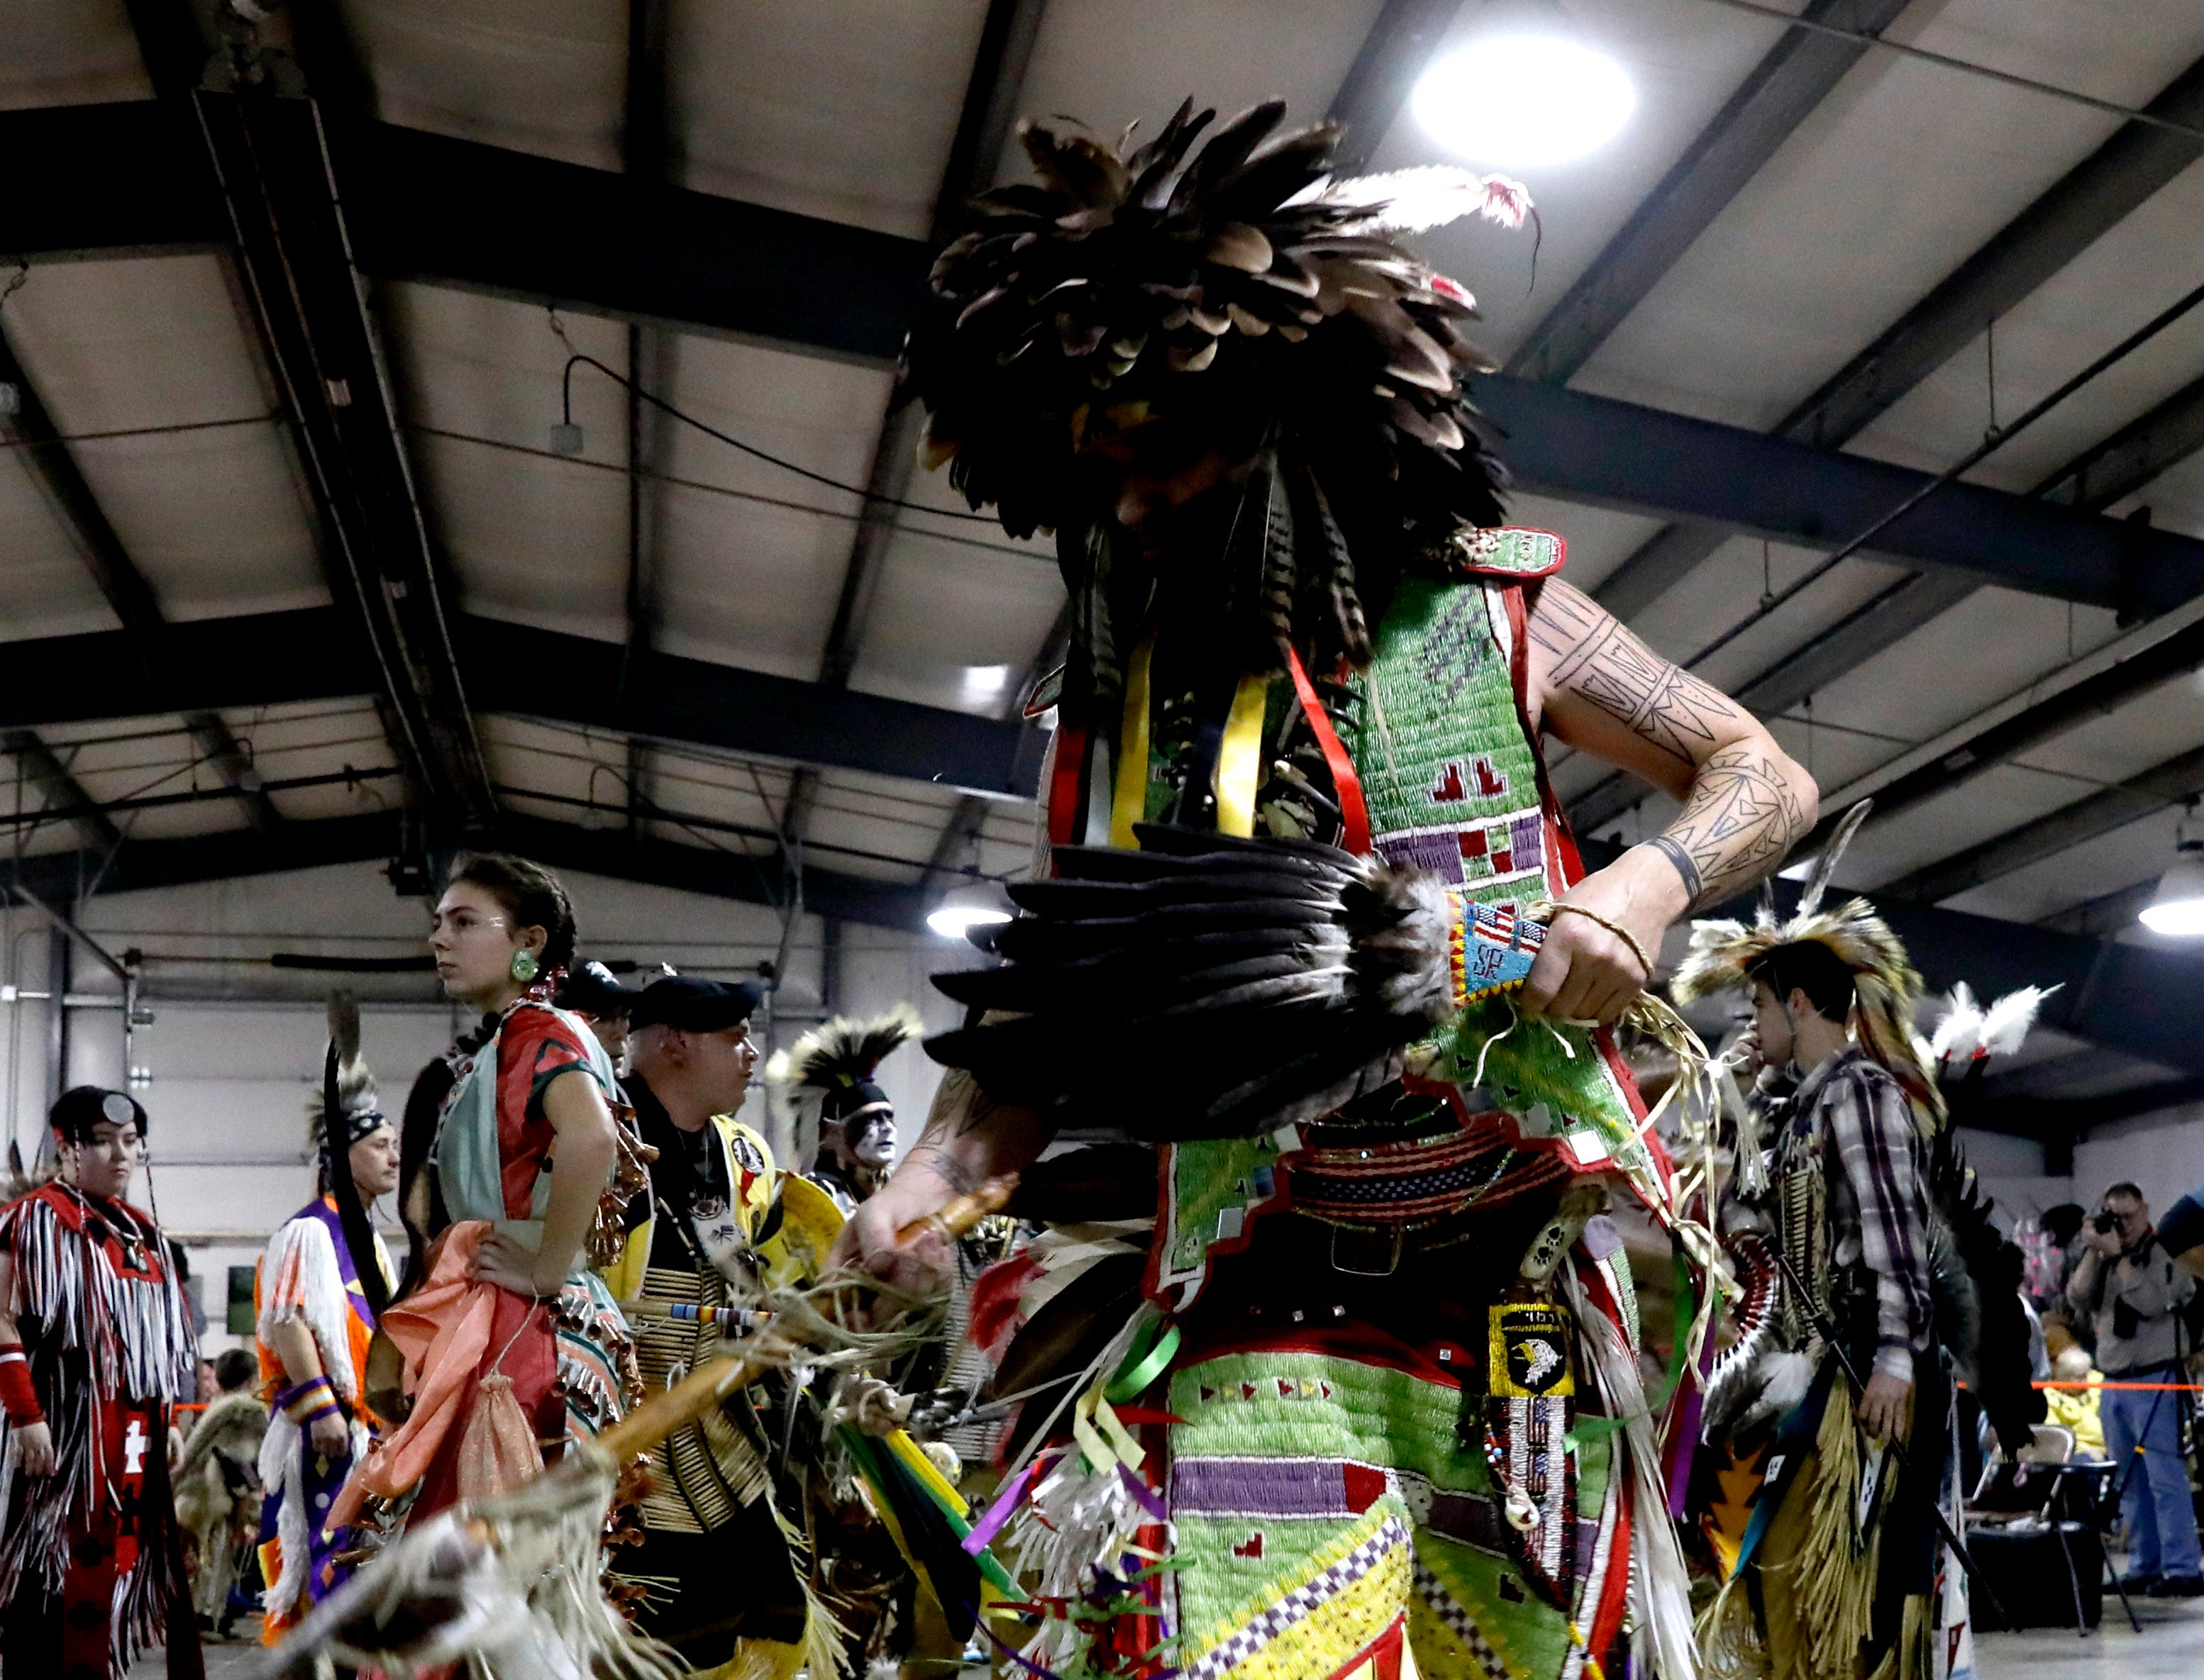 Shawn Reilly, from Newark, dances during one of the intertribal dances Saturday, Jan. 19, 2019, during the Honoring Traditions: An Eastern Woodland Native American Celebration at the Fairfield County Fairgrounds in Lancaster. Hundreds of people gathered at the fairgrounds for the 15th annual event.